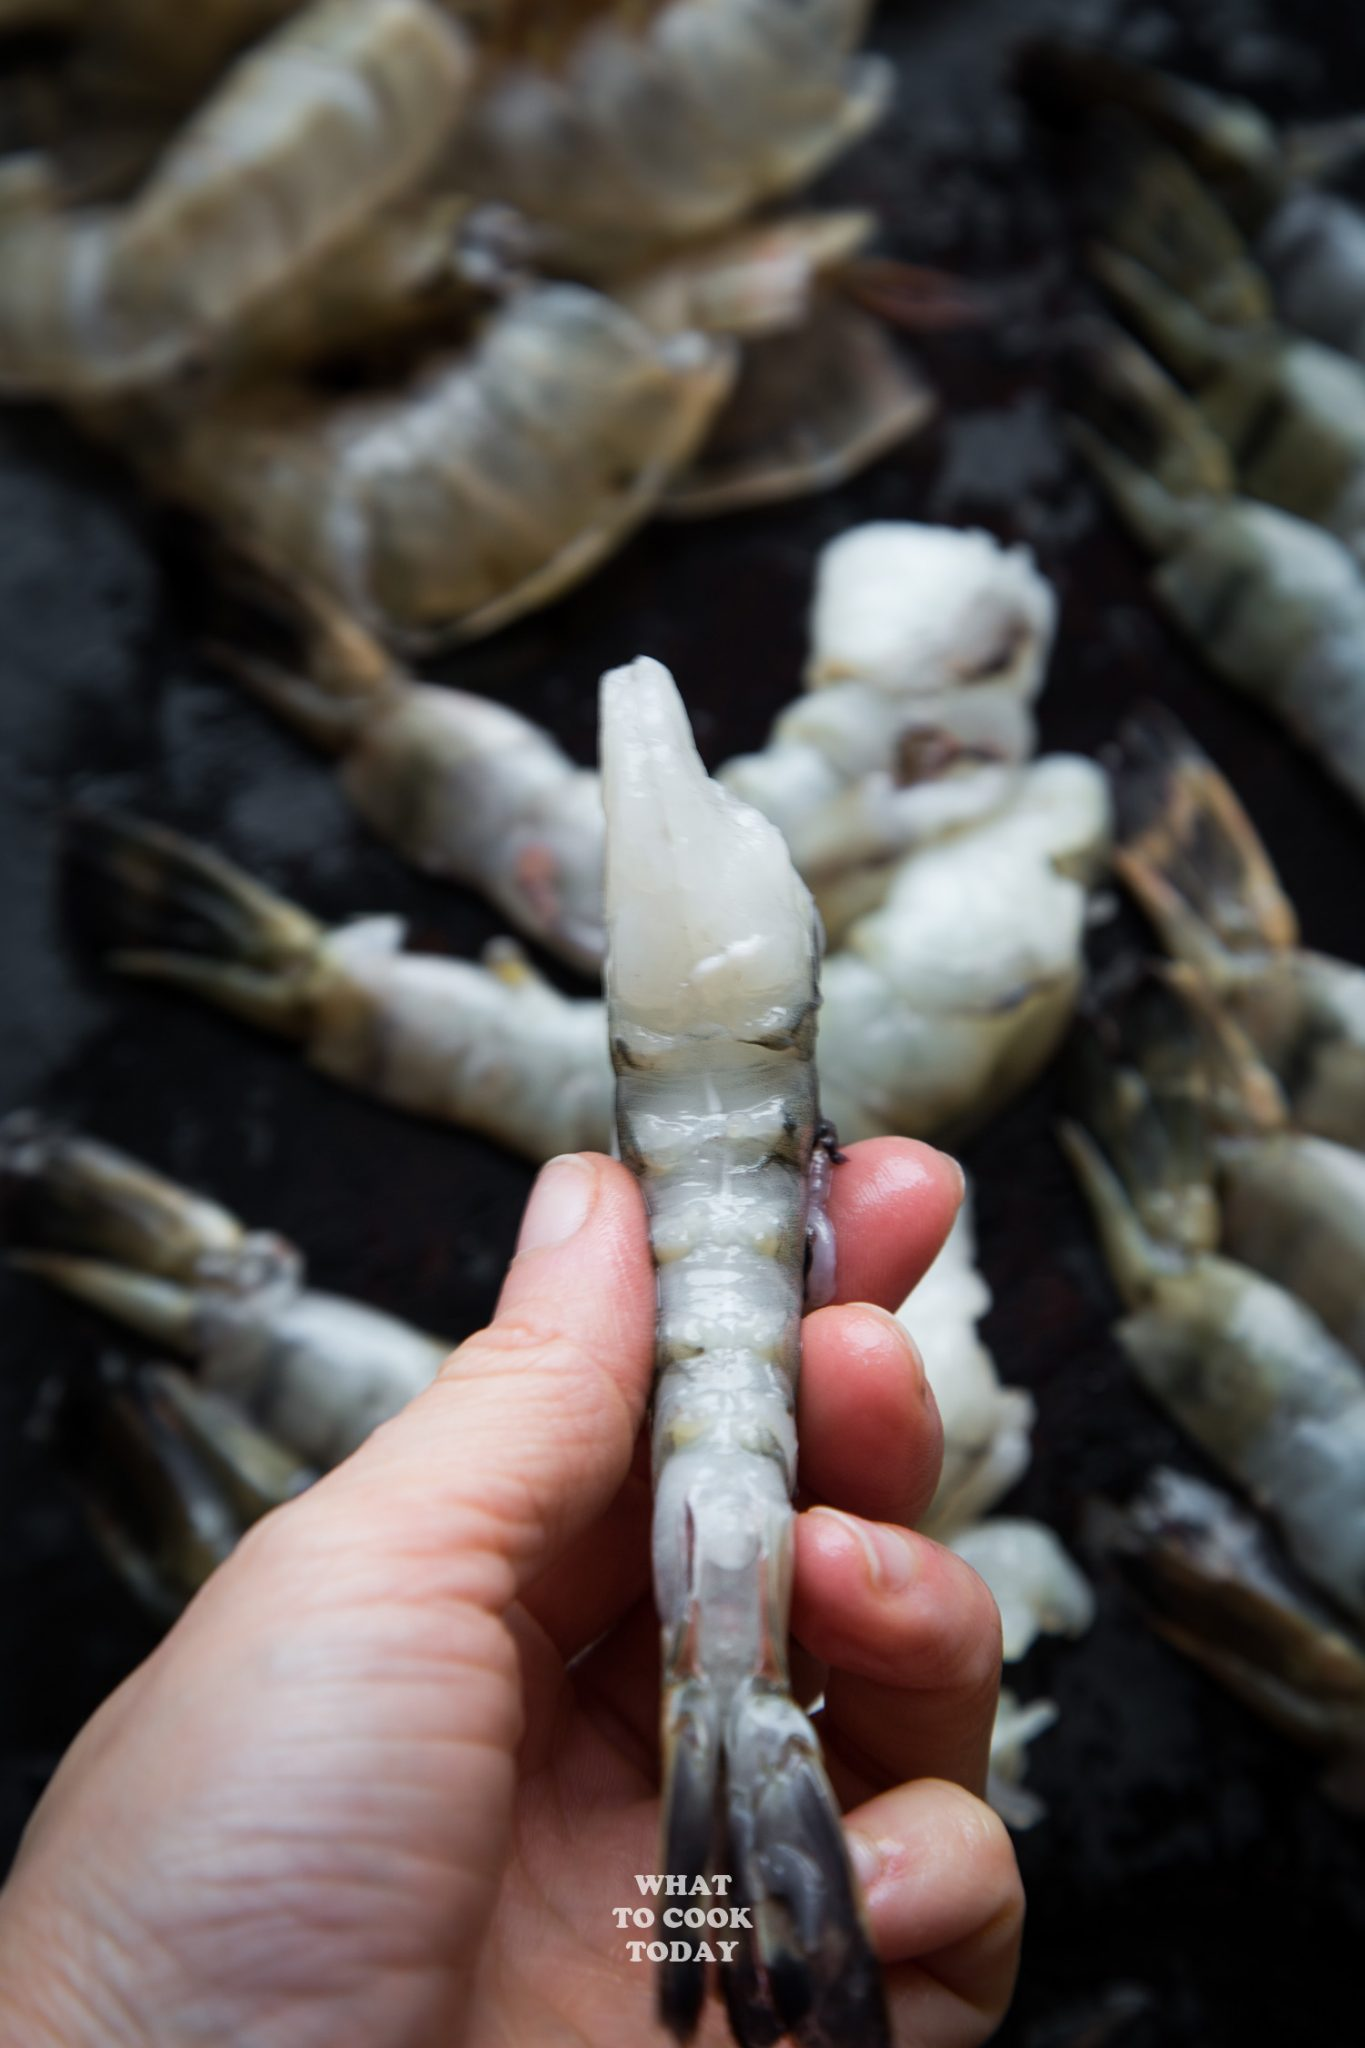 Tiger Shrimp